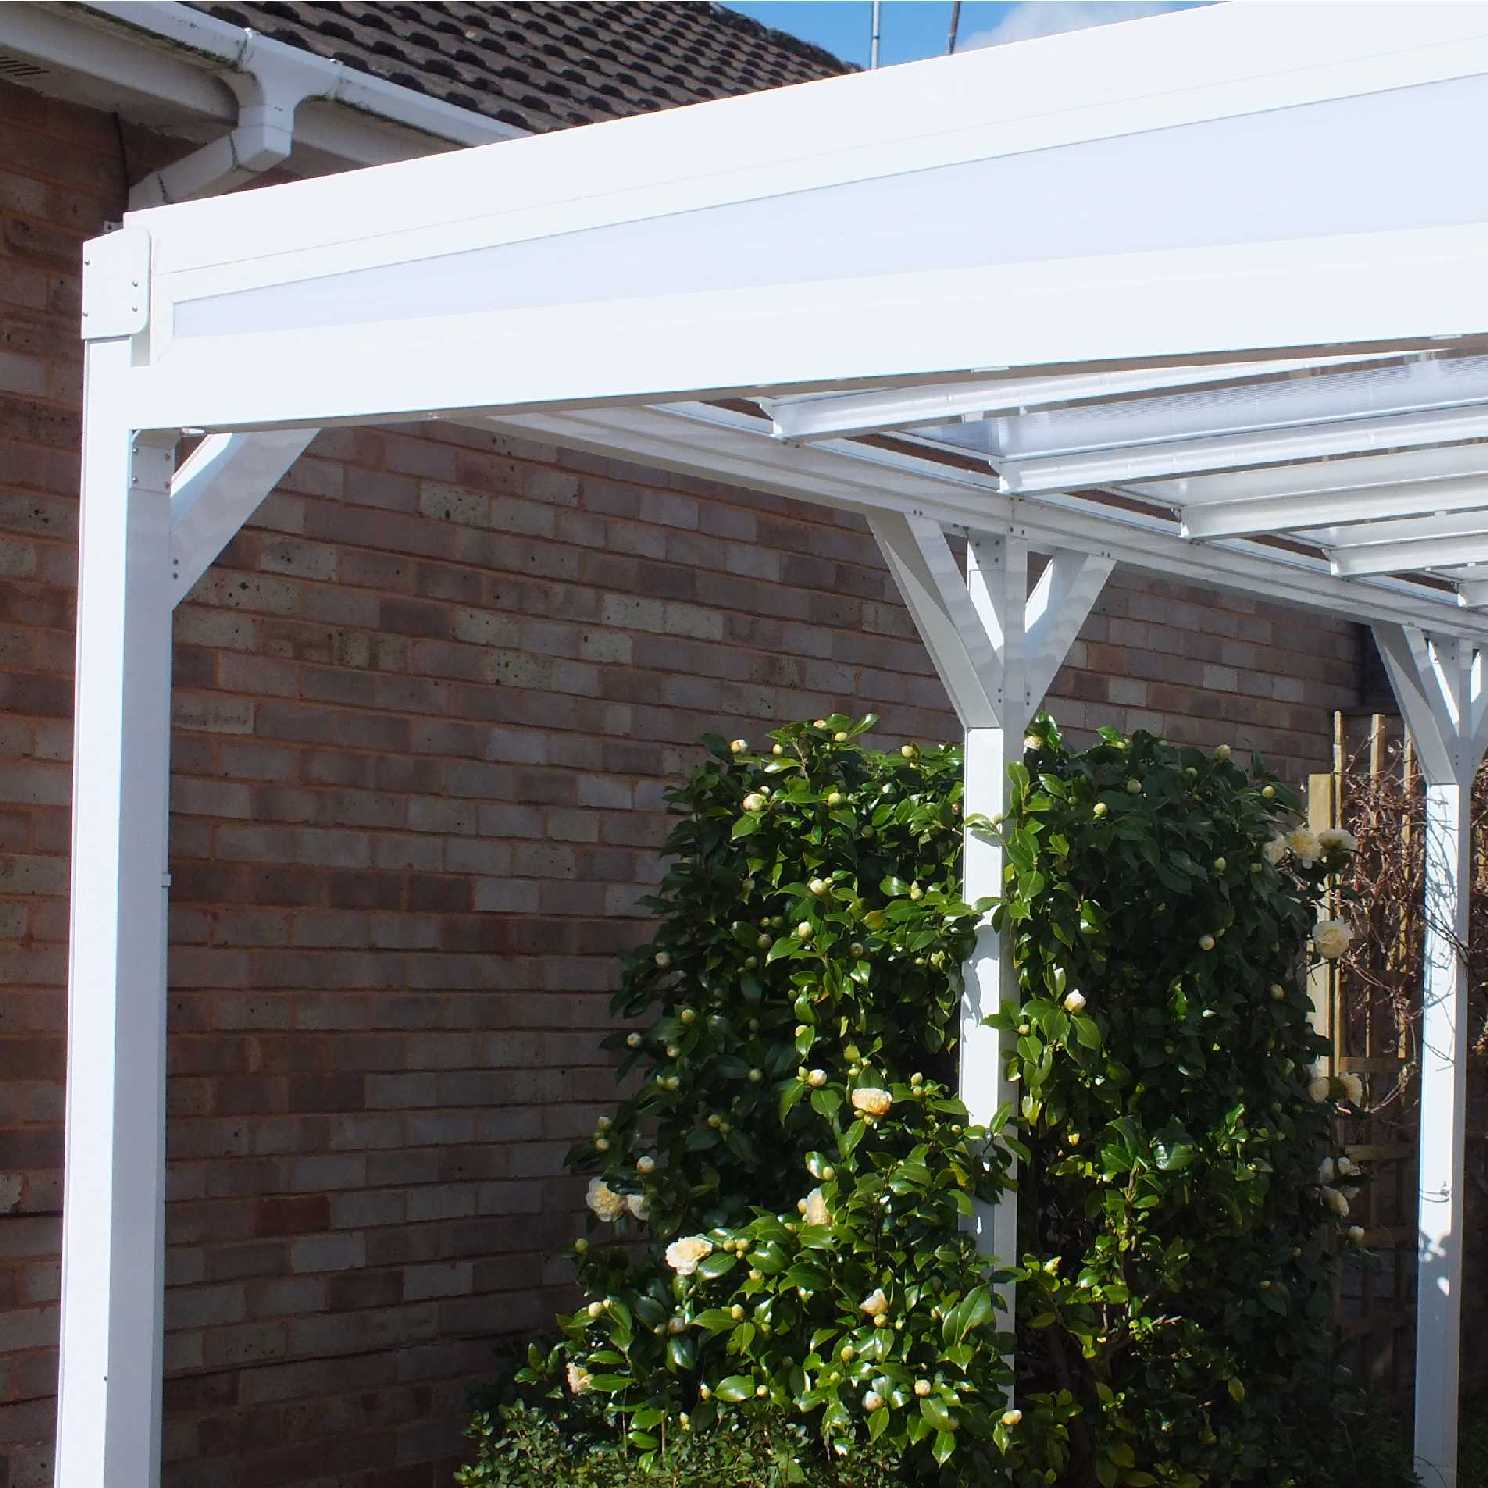 Omega Smart Lean-To Canopy with 16mm Polycarbonate Glazing - 9.9m (W) x 4.0m (P), (5) Supporting Posts from Omega Build